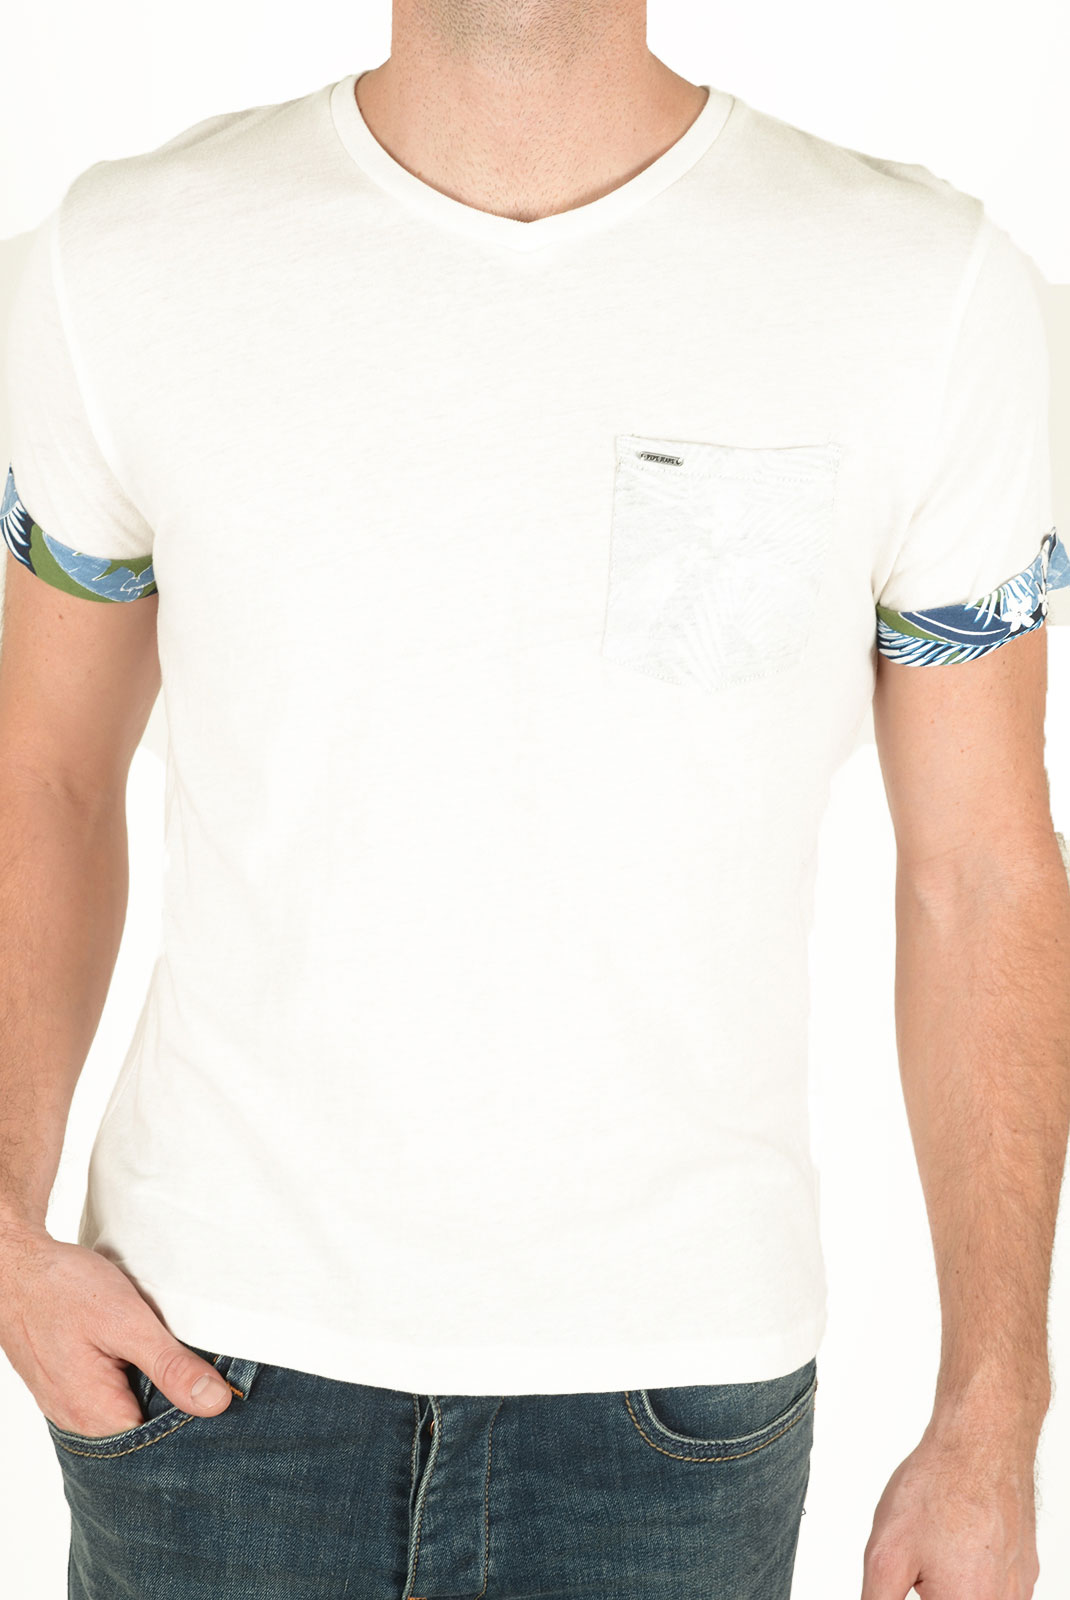 Tee-shirts manches courtes  Pepe jeans PM503577 MURVIN 803 OFF WHITE